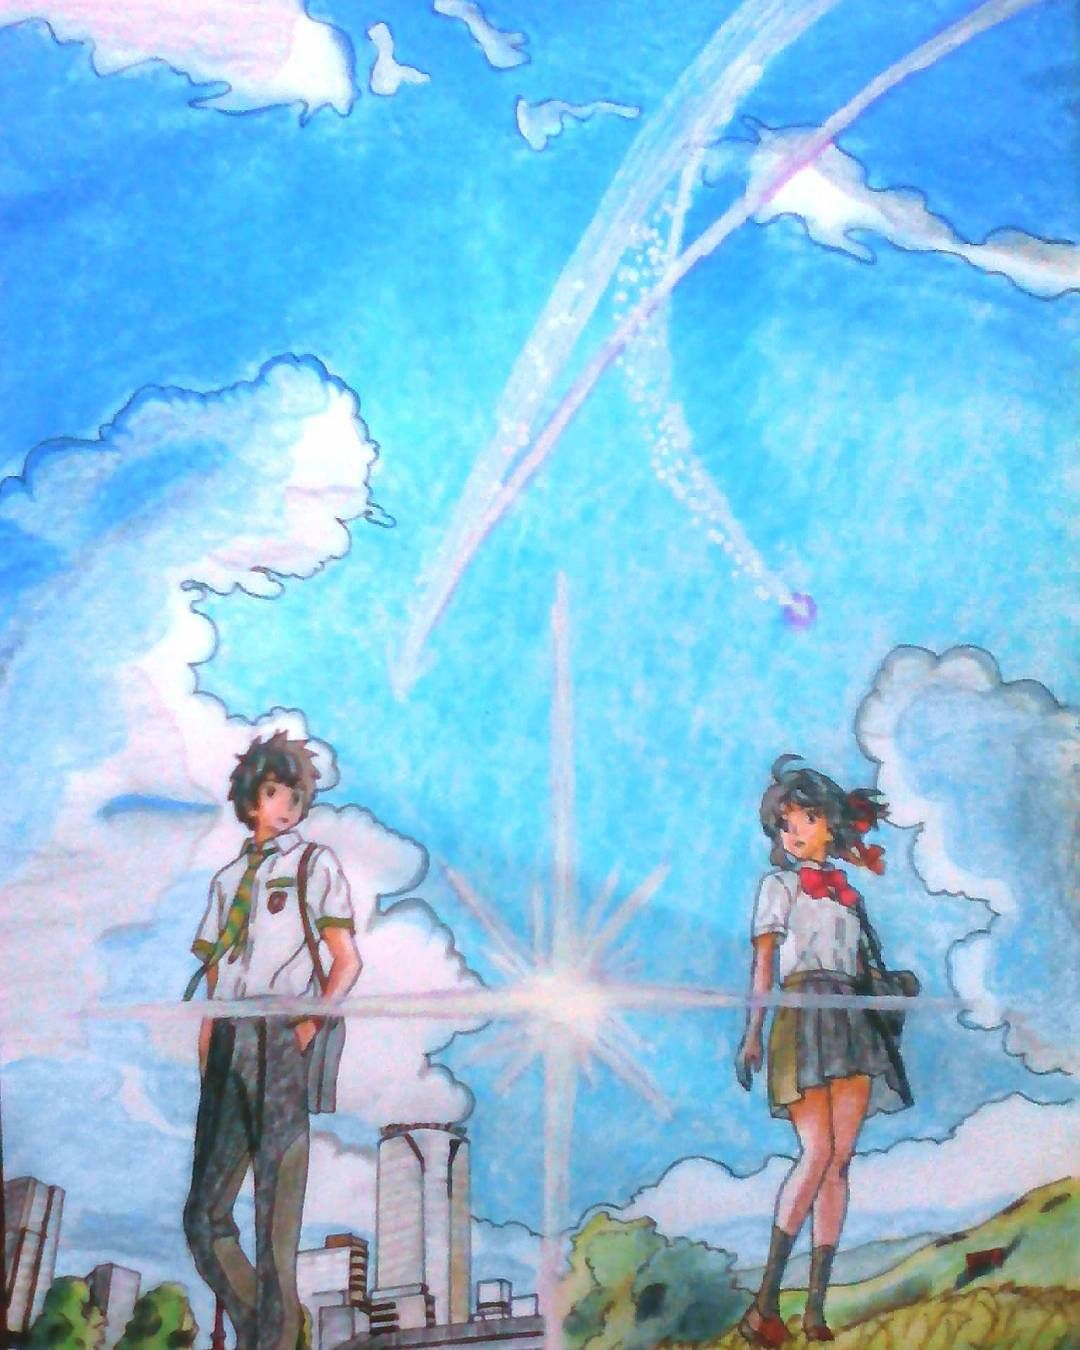 Pin on anime movie your name